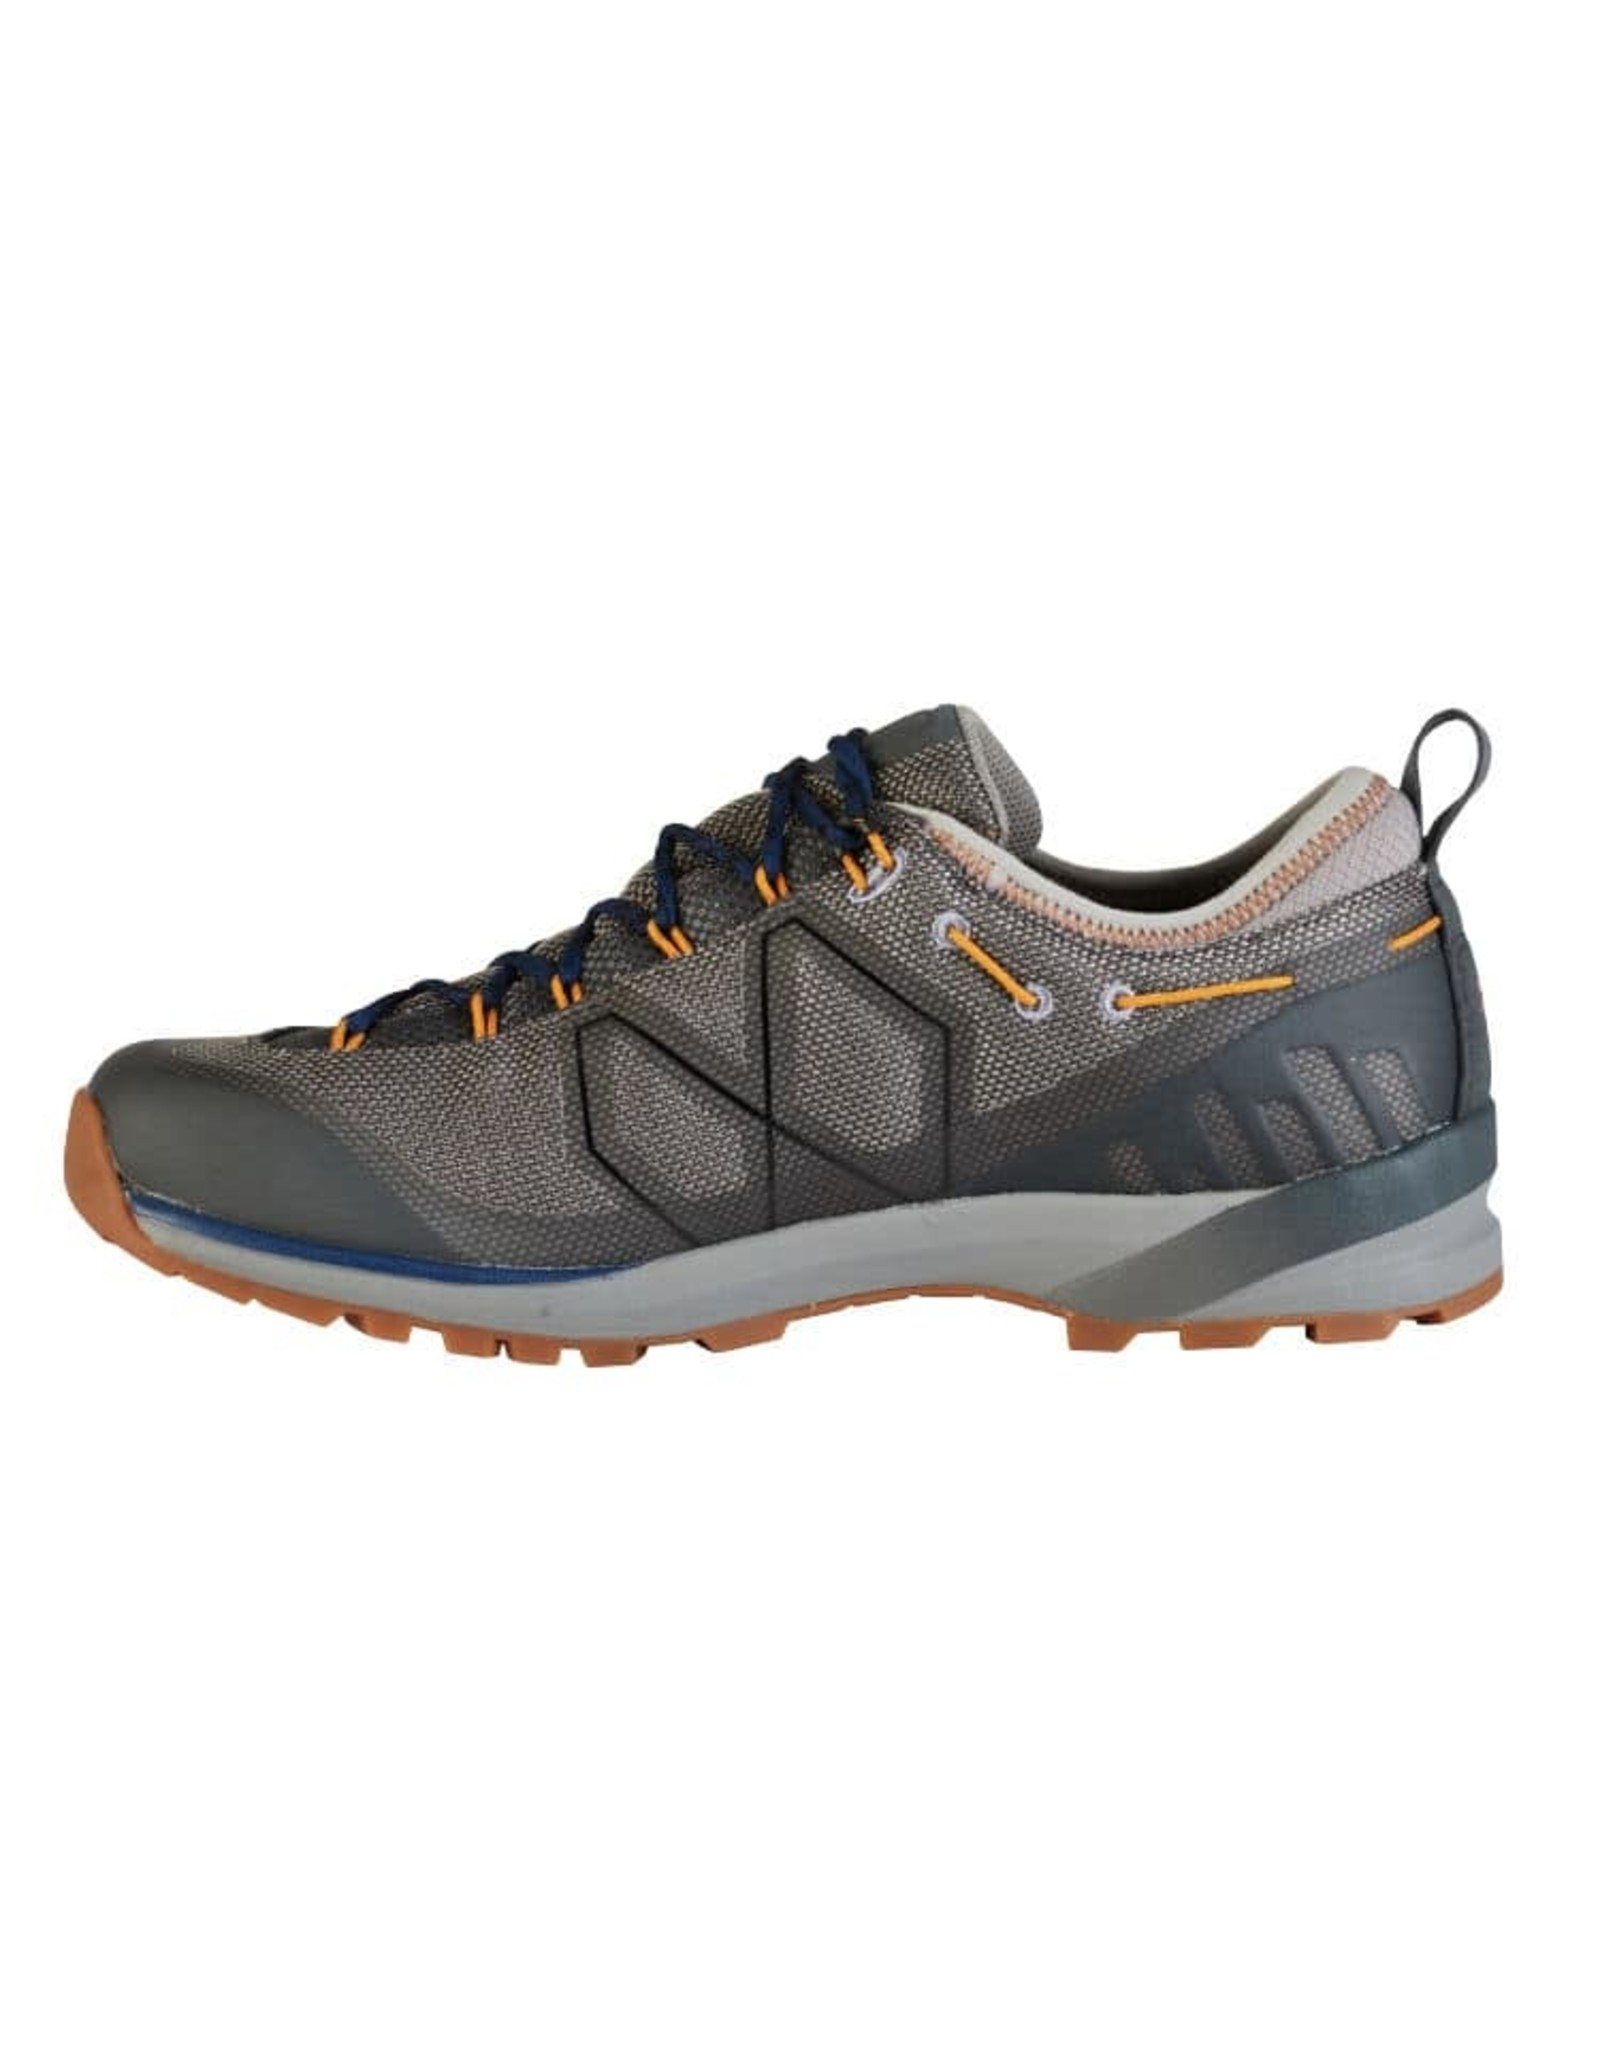 GARMONT FOOTWEAR GARMONT MEN'S KARAKUM LOW GTX